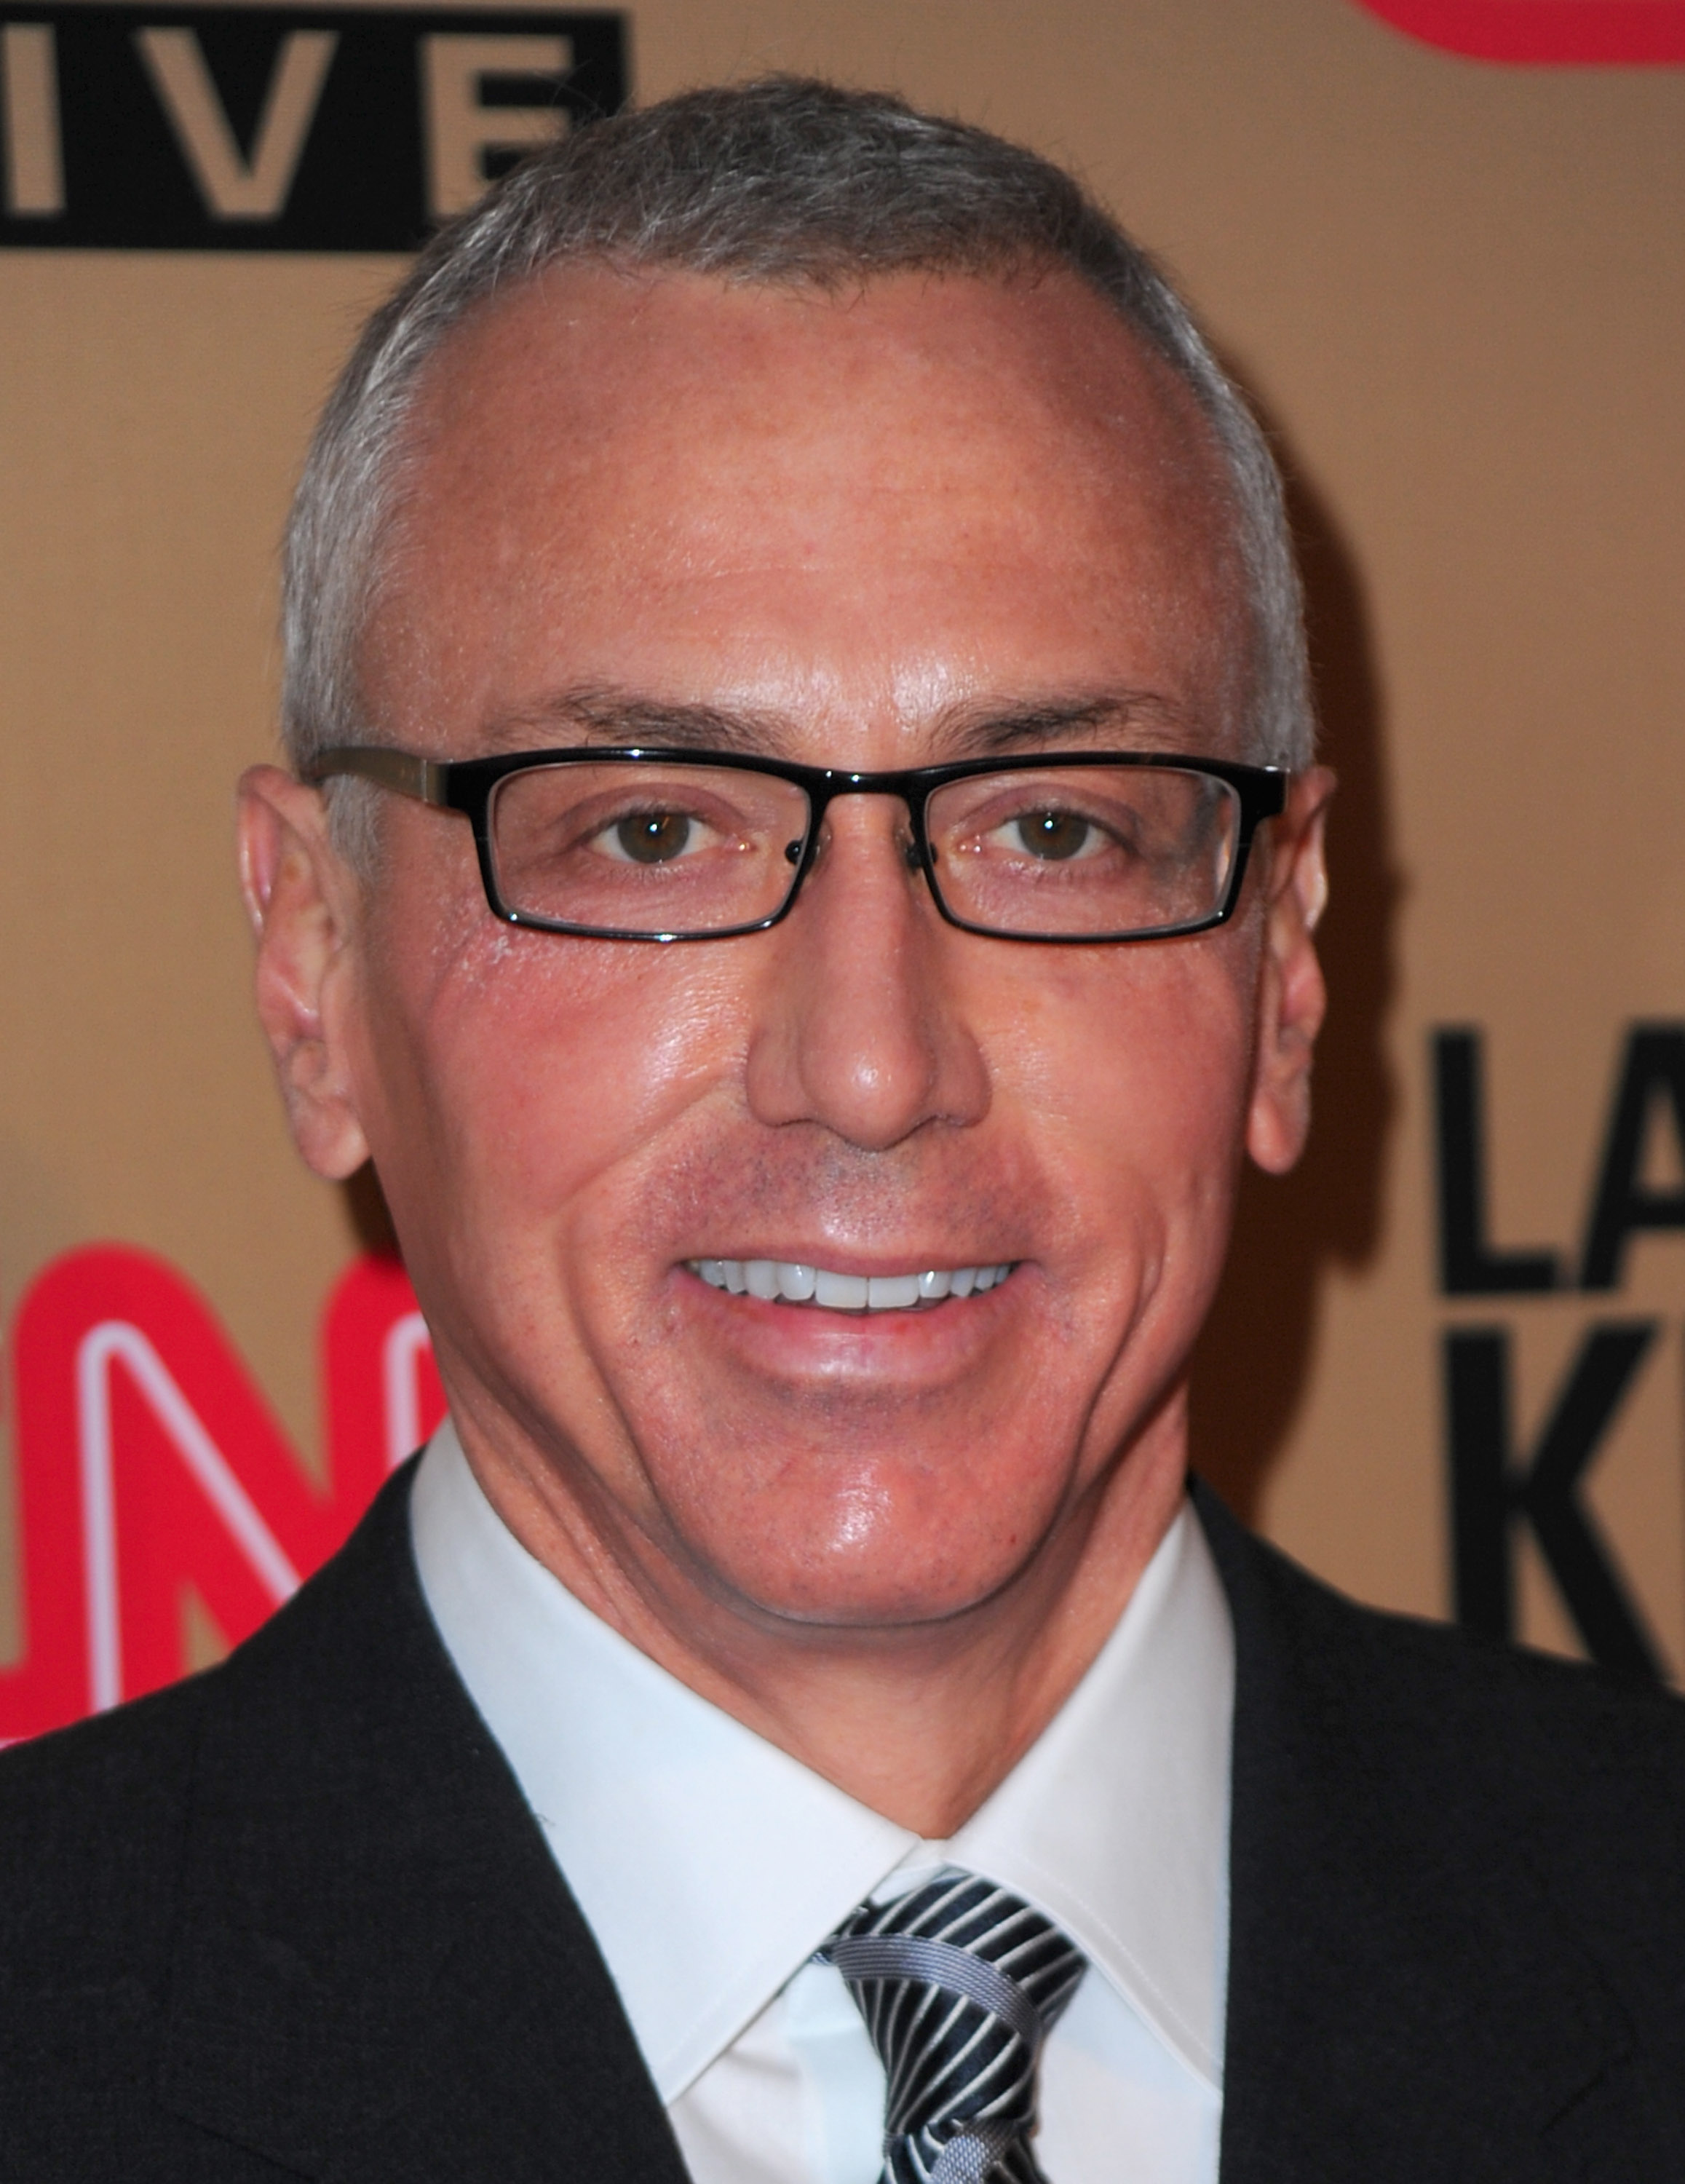 """Dr.-Drew-Pinsky-arrives-at-CNN's-""""Larry-King-Live""""-final-broadcast-party-at-Spago-restaurant-on-December-16-2010-in-Beverly-Hills"""